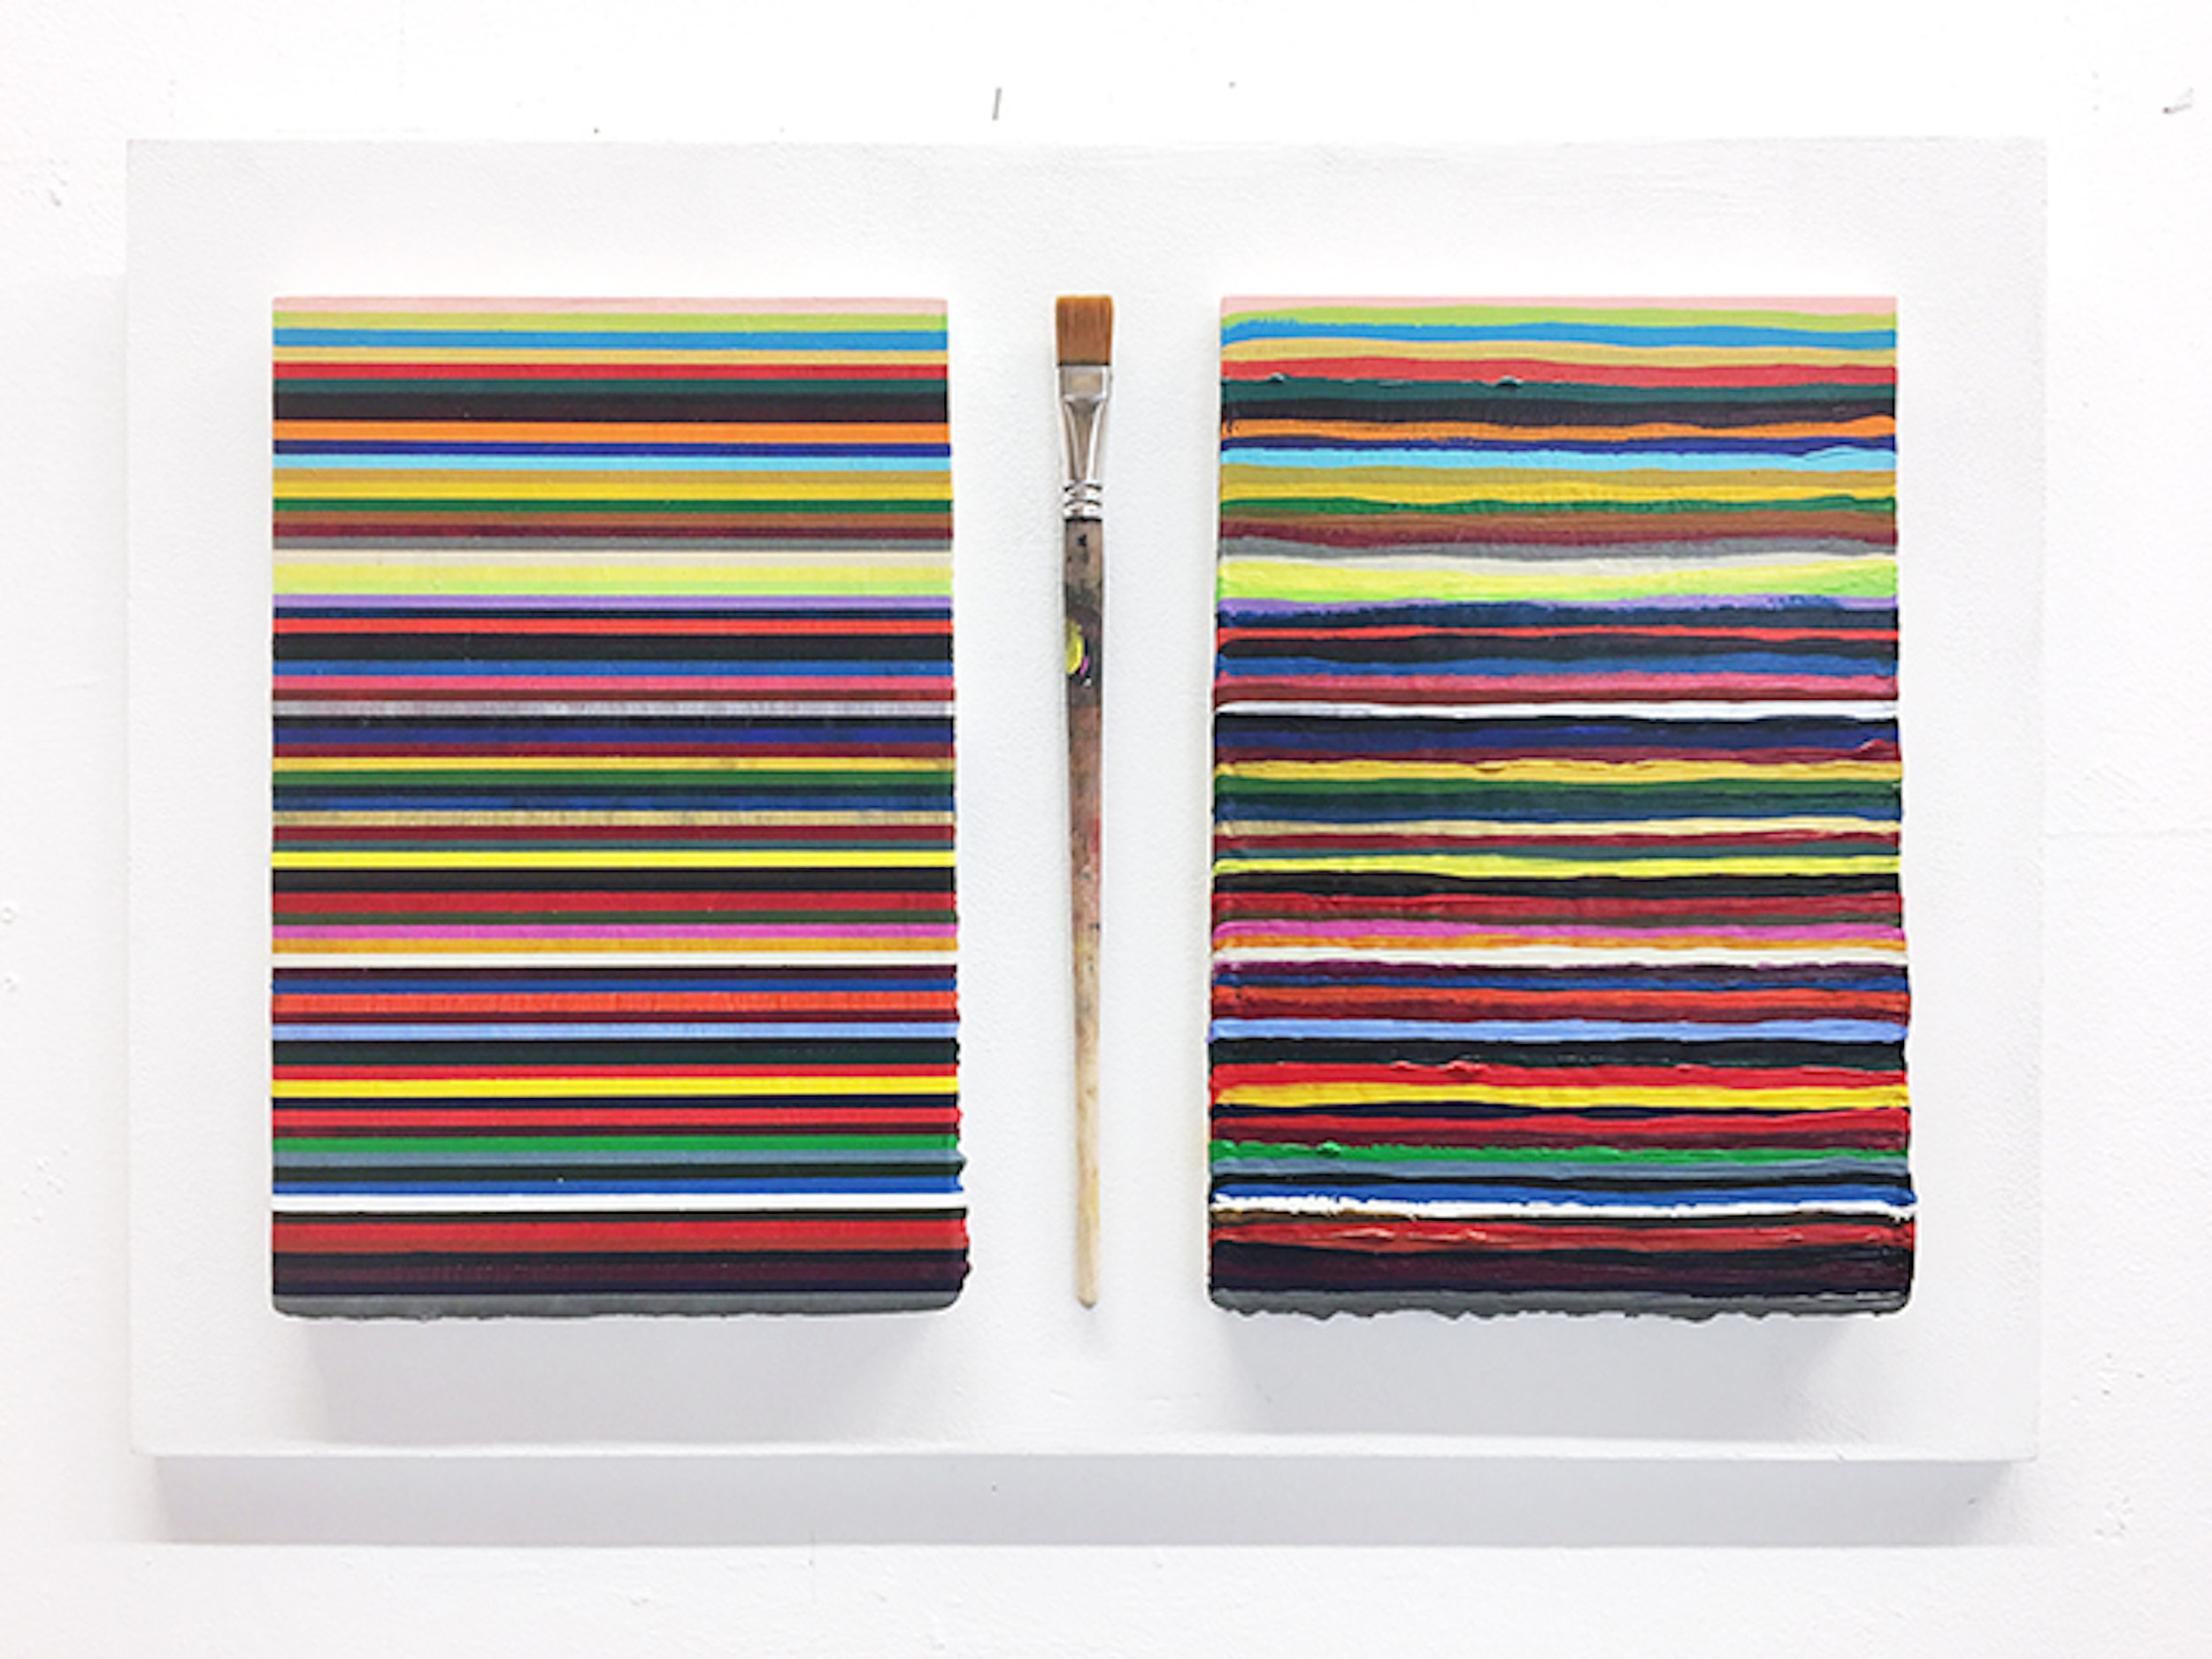 Nina Rodin,  2 Times 72 Layers and a Brush, 2017,  Acrylic on board in Perspex frame; brush,  Each 24x30